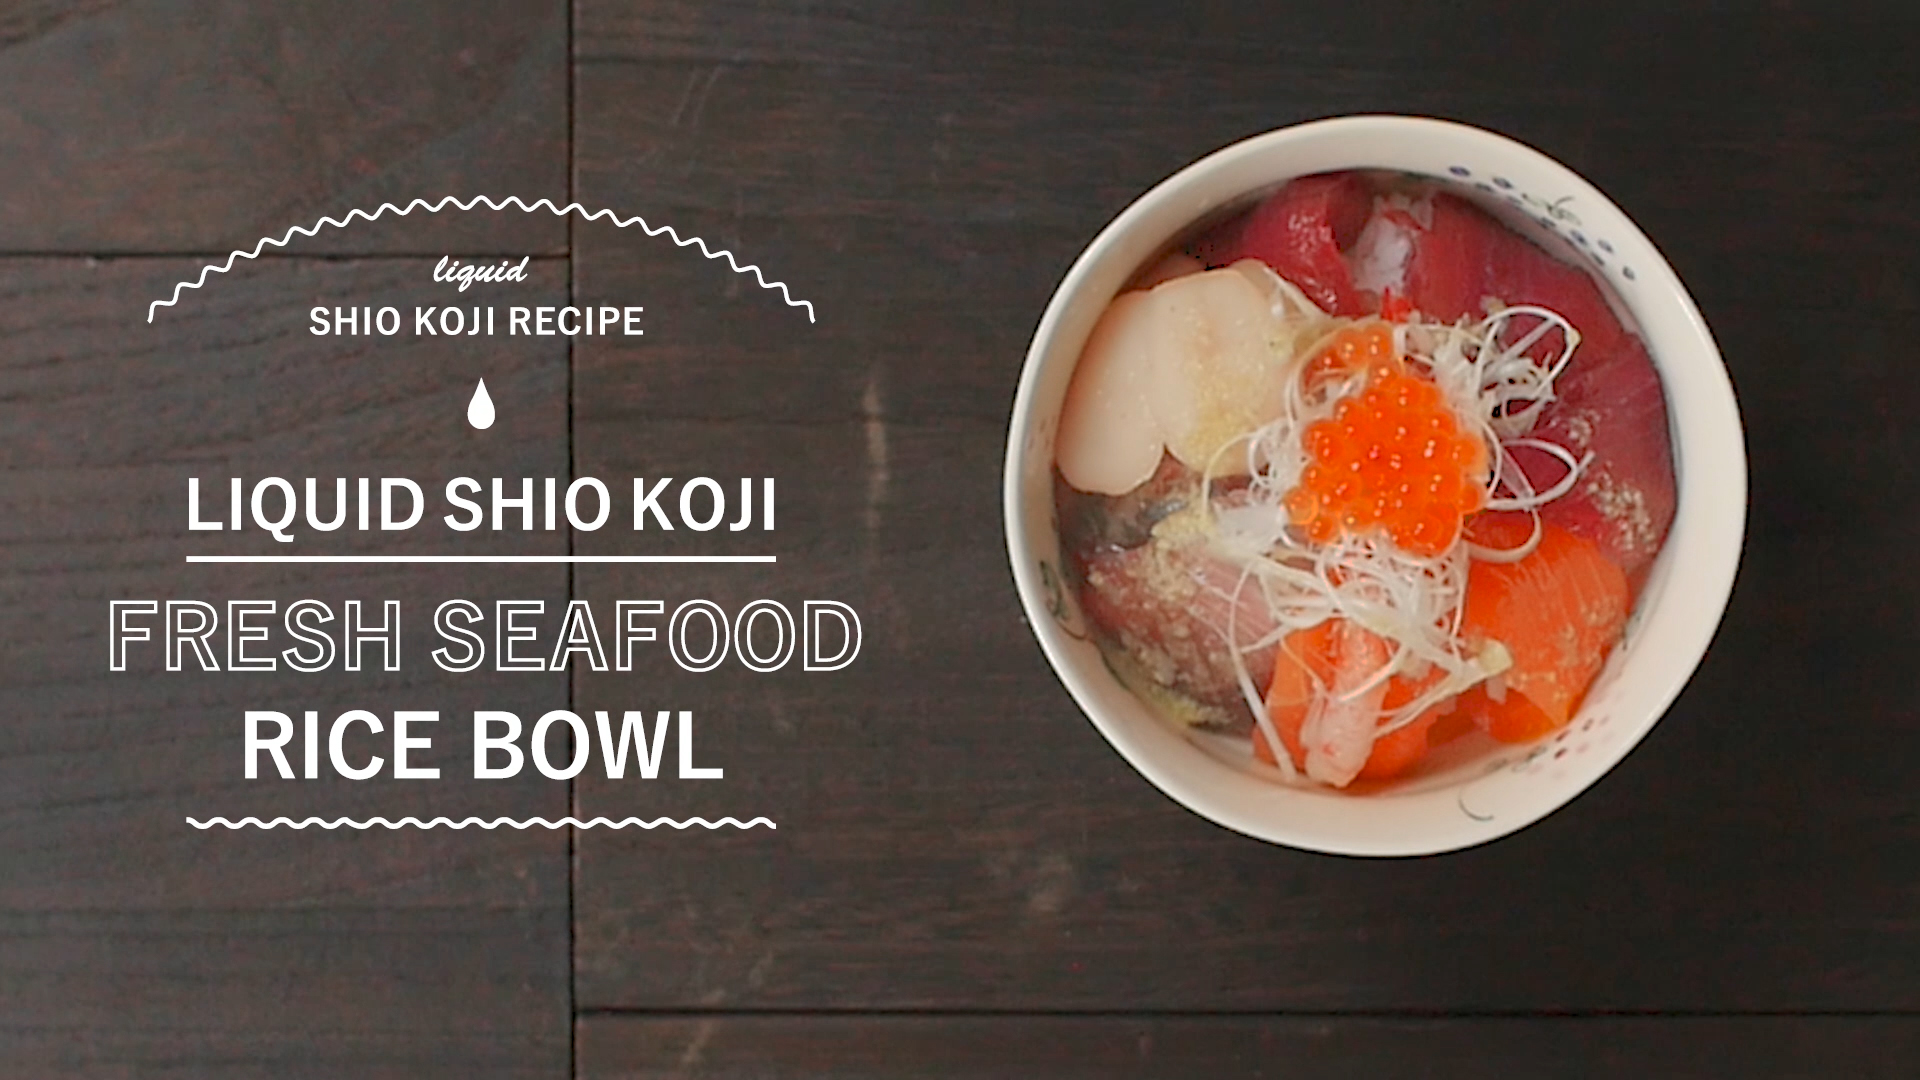 【LIQUID SHIO KOJI RECIPE FRESH SEAFOOD RICE BOWL】 Use Liquid Shio Koji = Premium Rice Bowl!